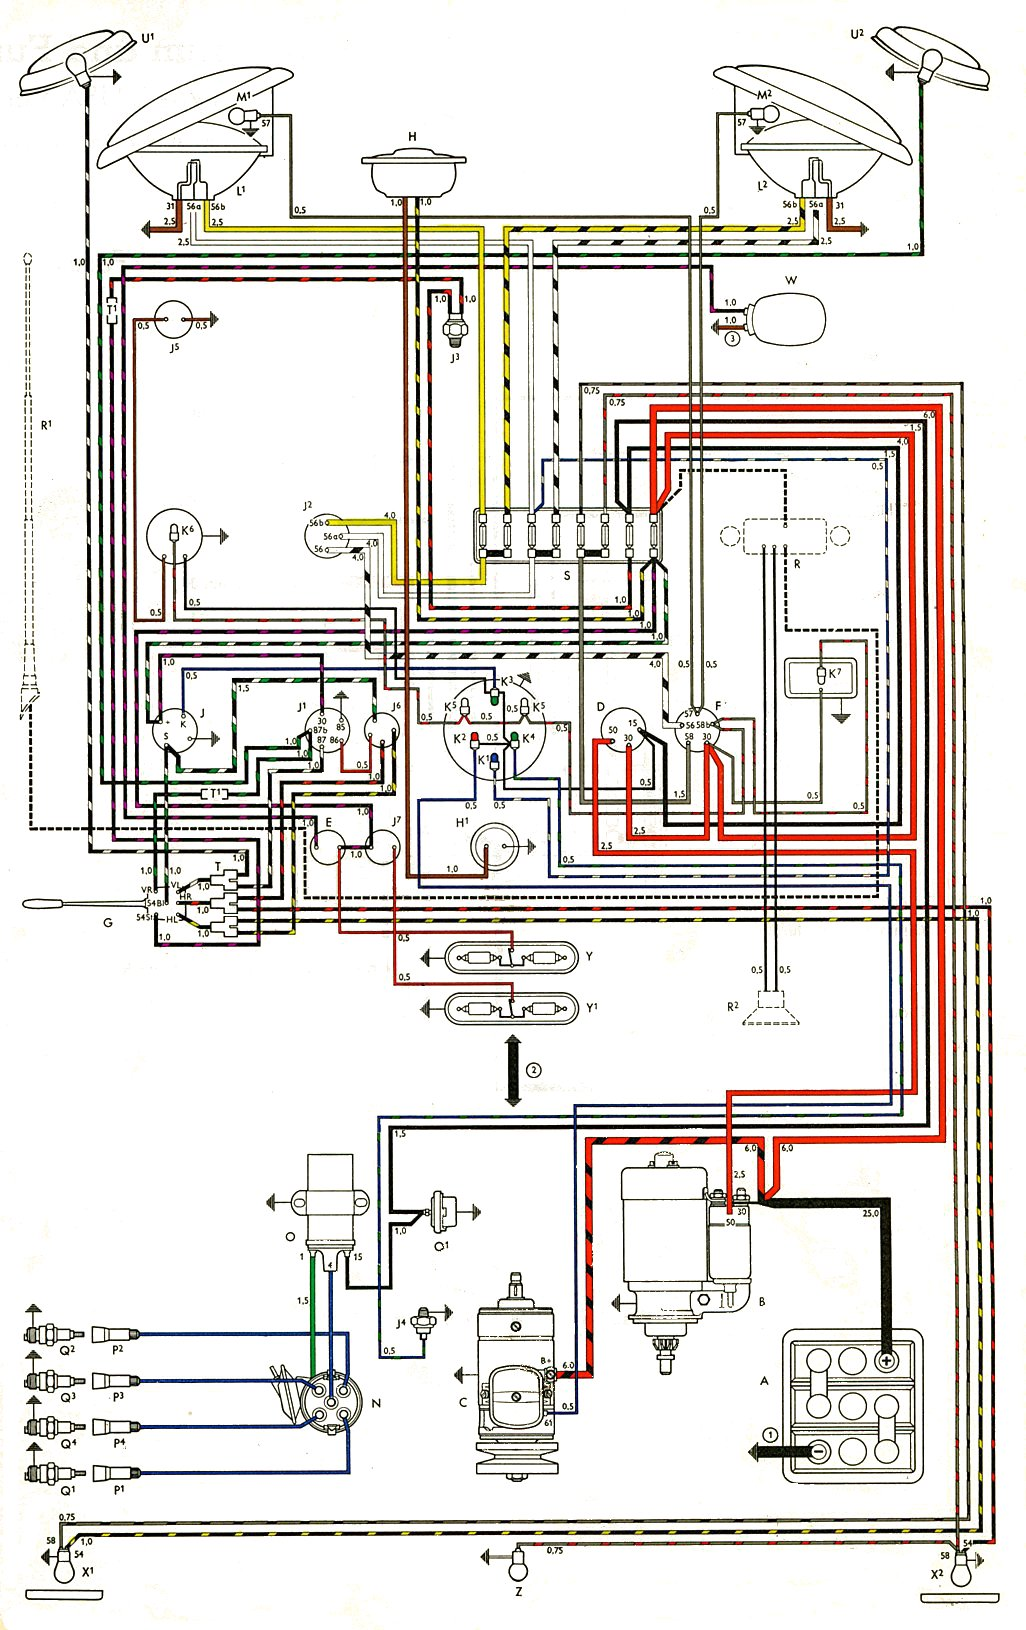 76 Vw Bus Wiring Diagram The Portal And Forum Of 1971 Engine Thesamba Com Type 2 Diagrams Rh 1967 77 Van